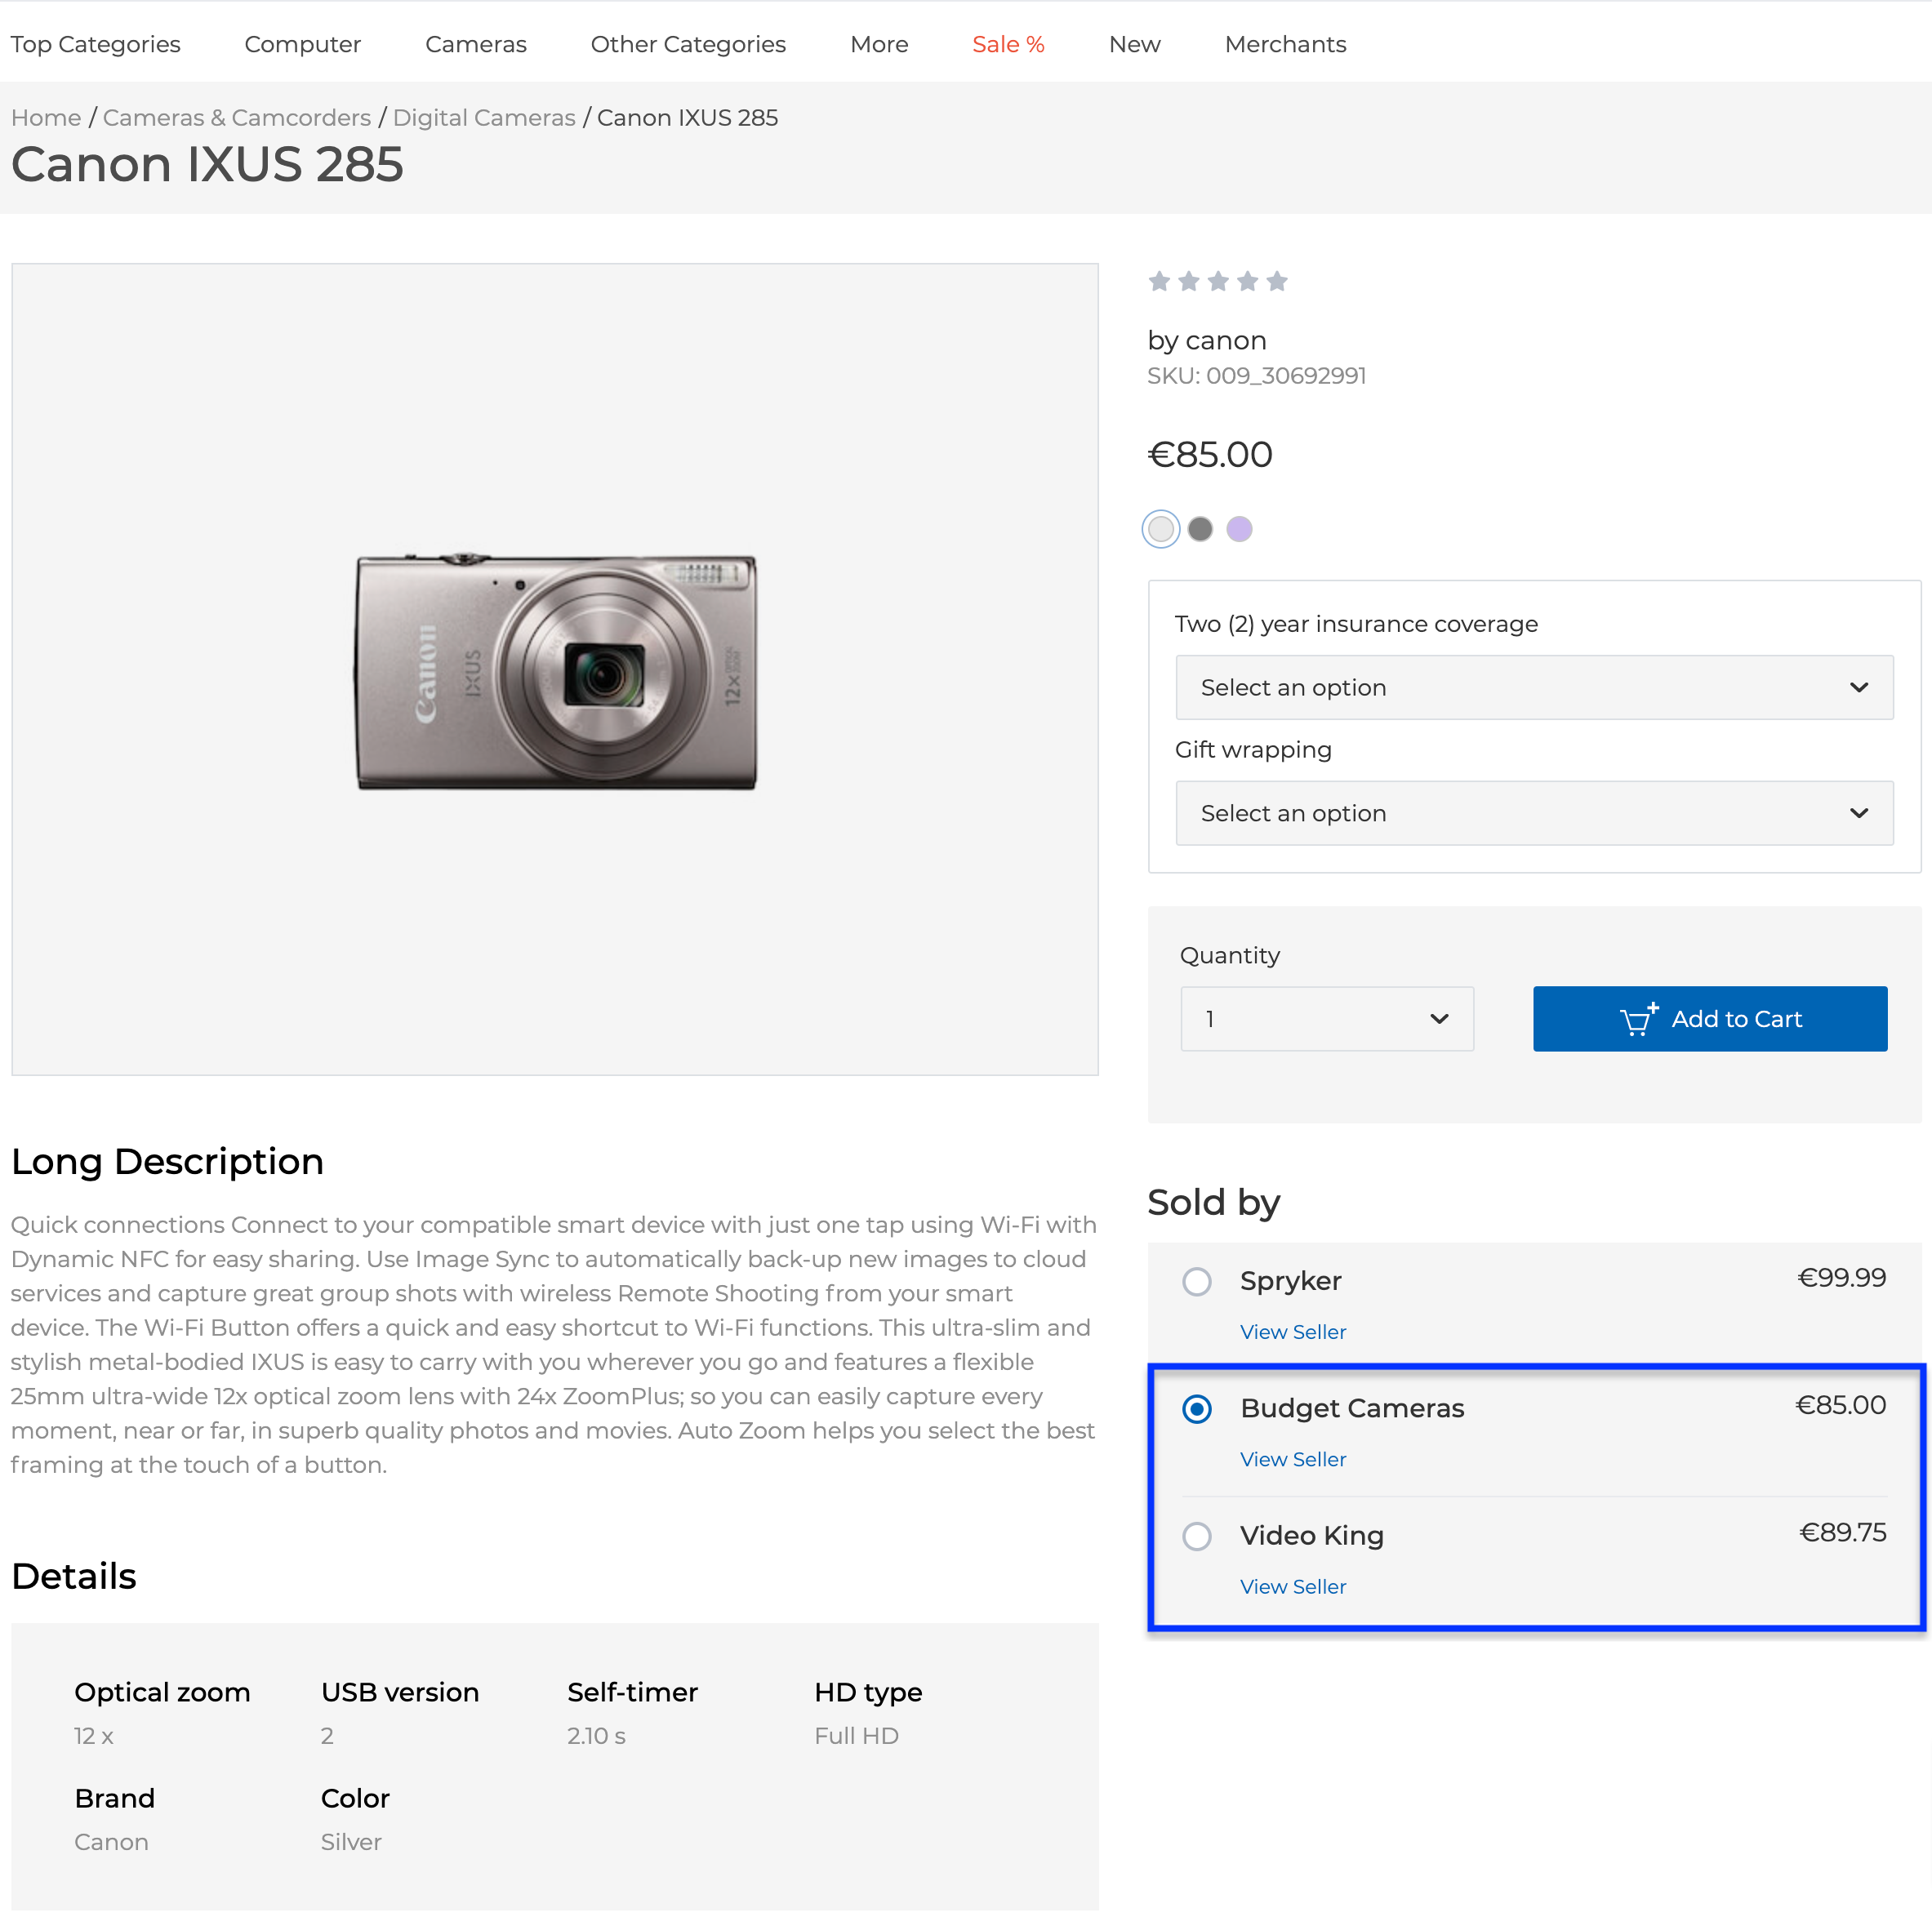 Merchant offers on the Product Details page